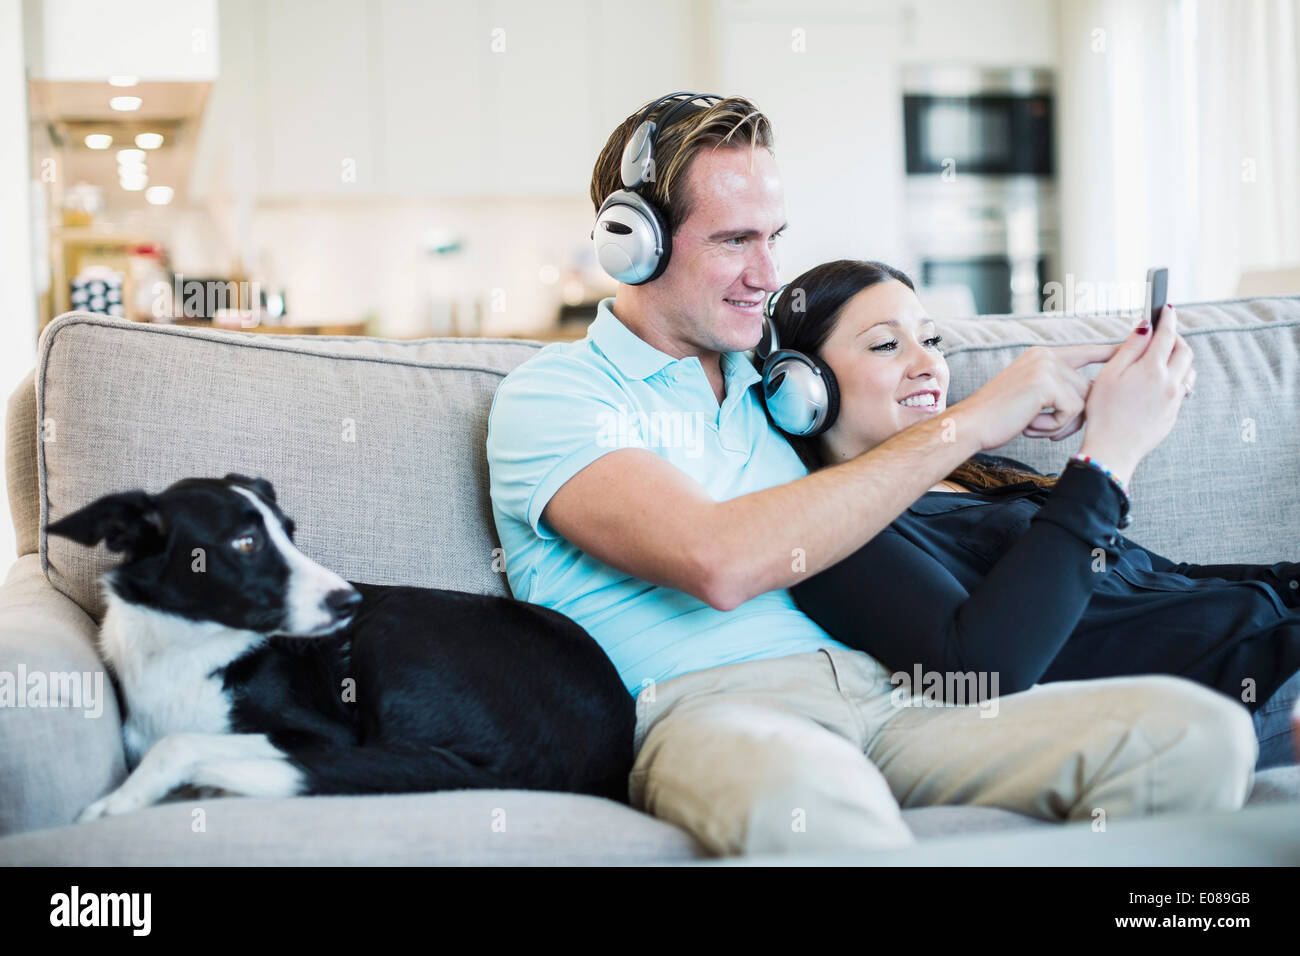 Couple listening to Headphones with dog sitting on sofa Photo Stock